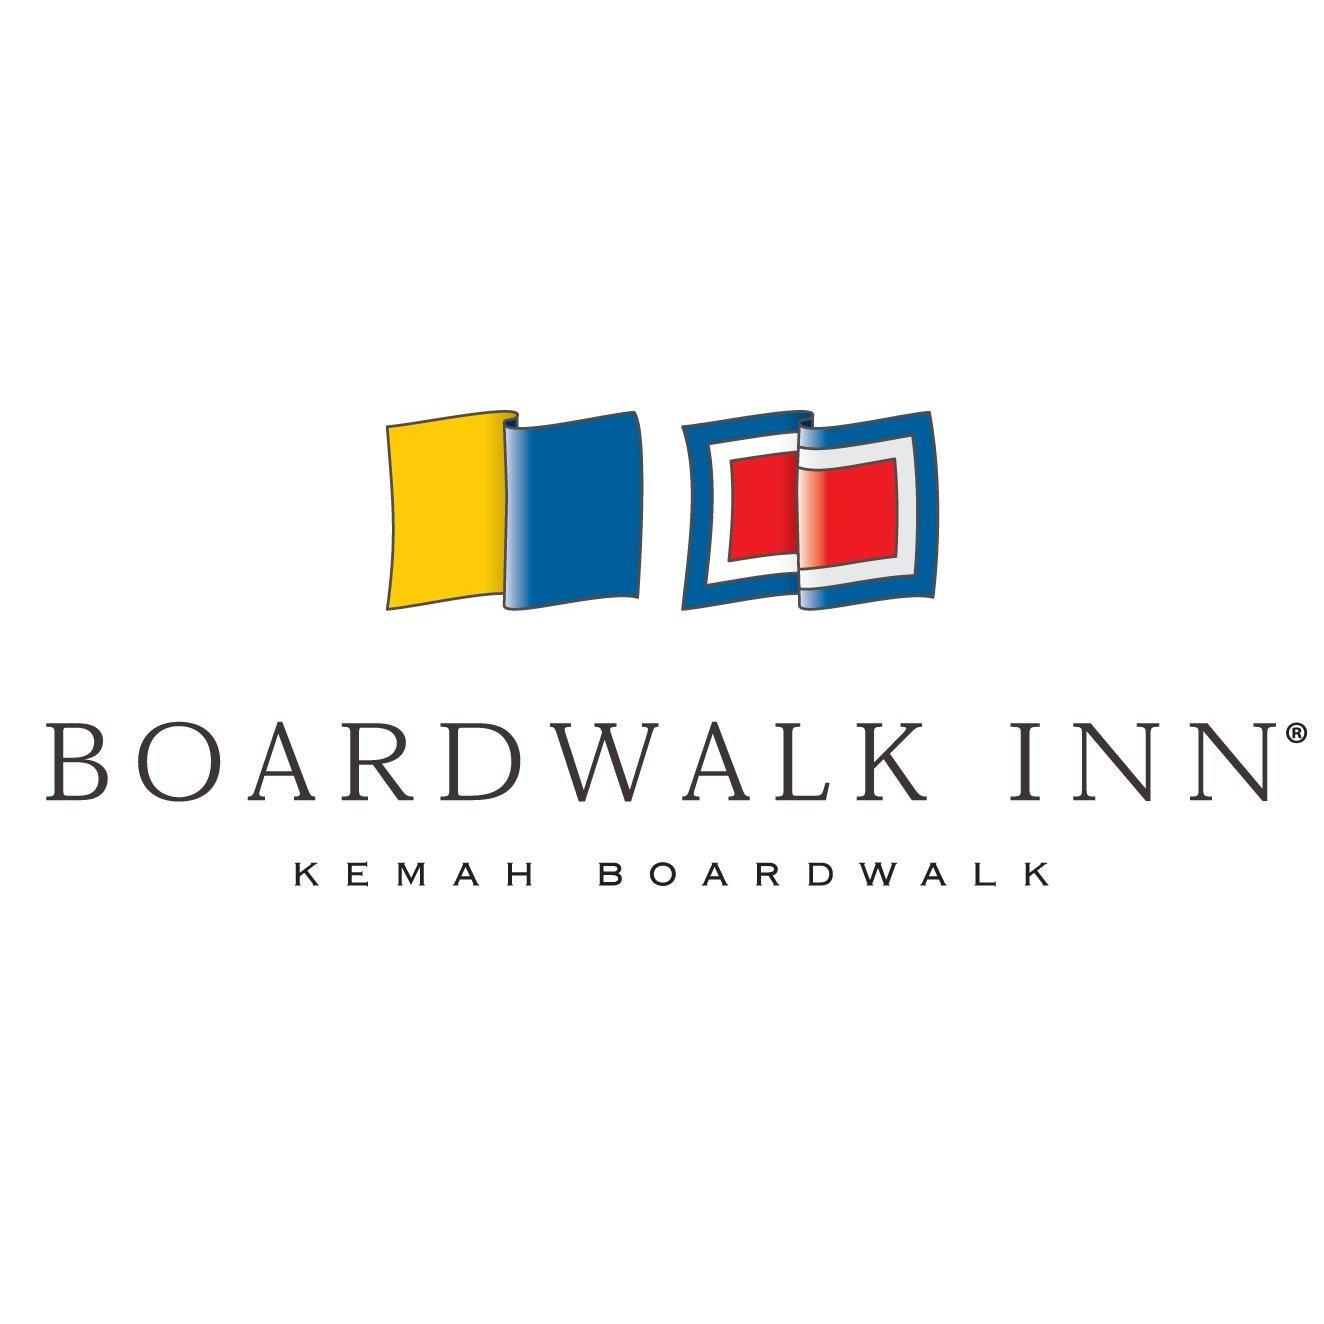 Kemah boardwalk discounts coupons